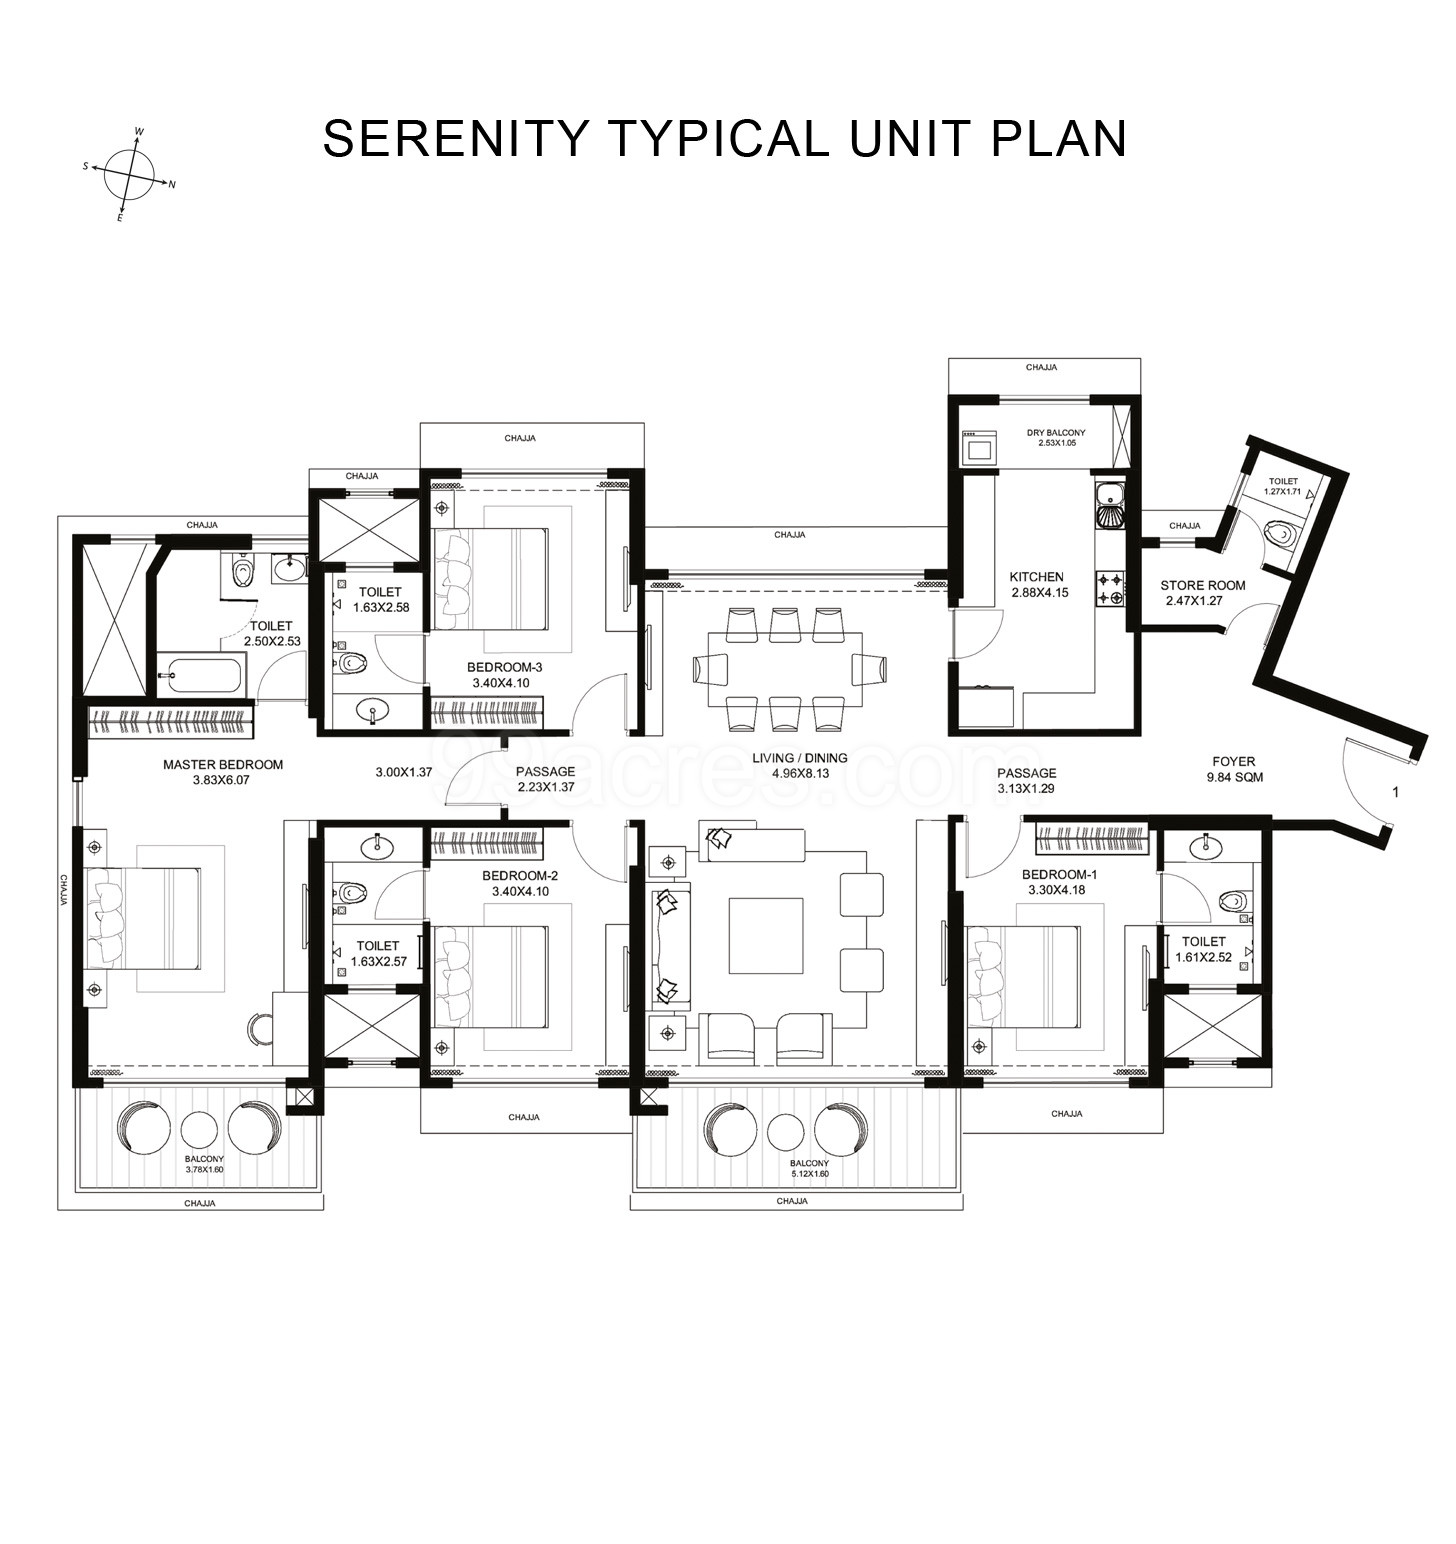 97  floor plan of serenity from firefly